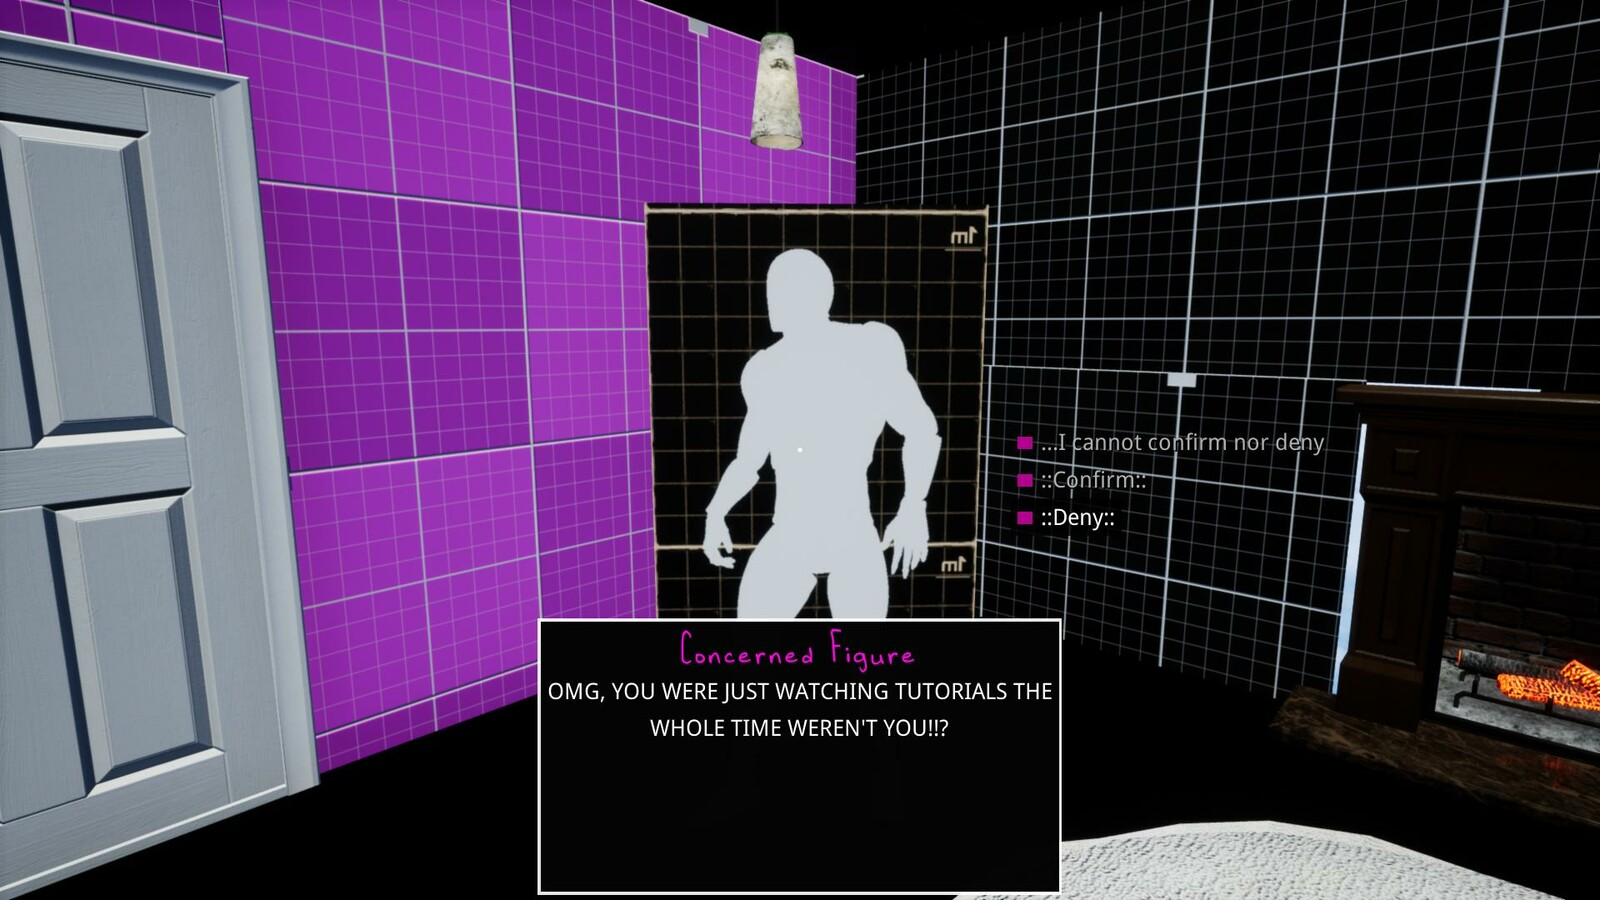 Dialogue that introduces the concept to the player